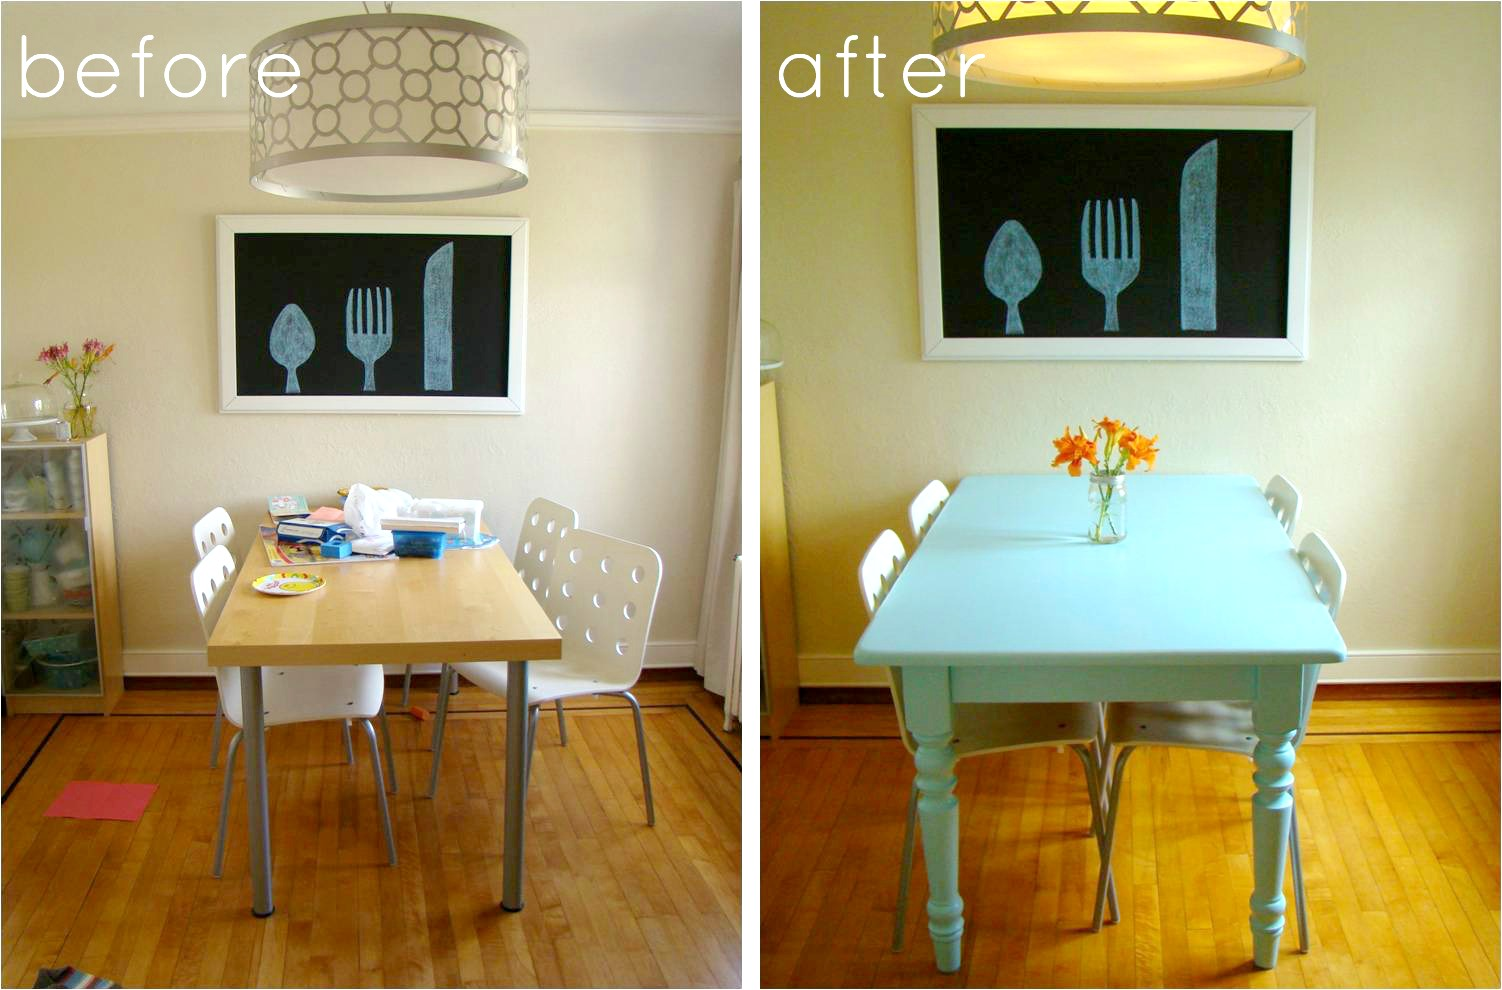 oak tables painting kitchen table best images about OAK TABLES on Pinterest Table and chairs Painted chairs and Solid oak table